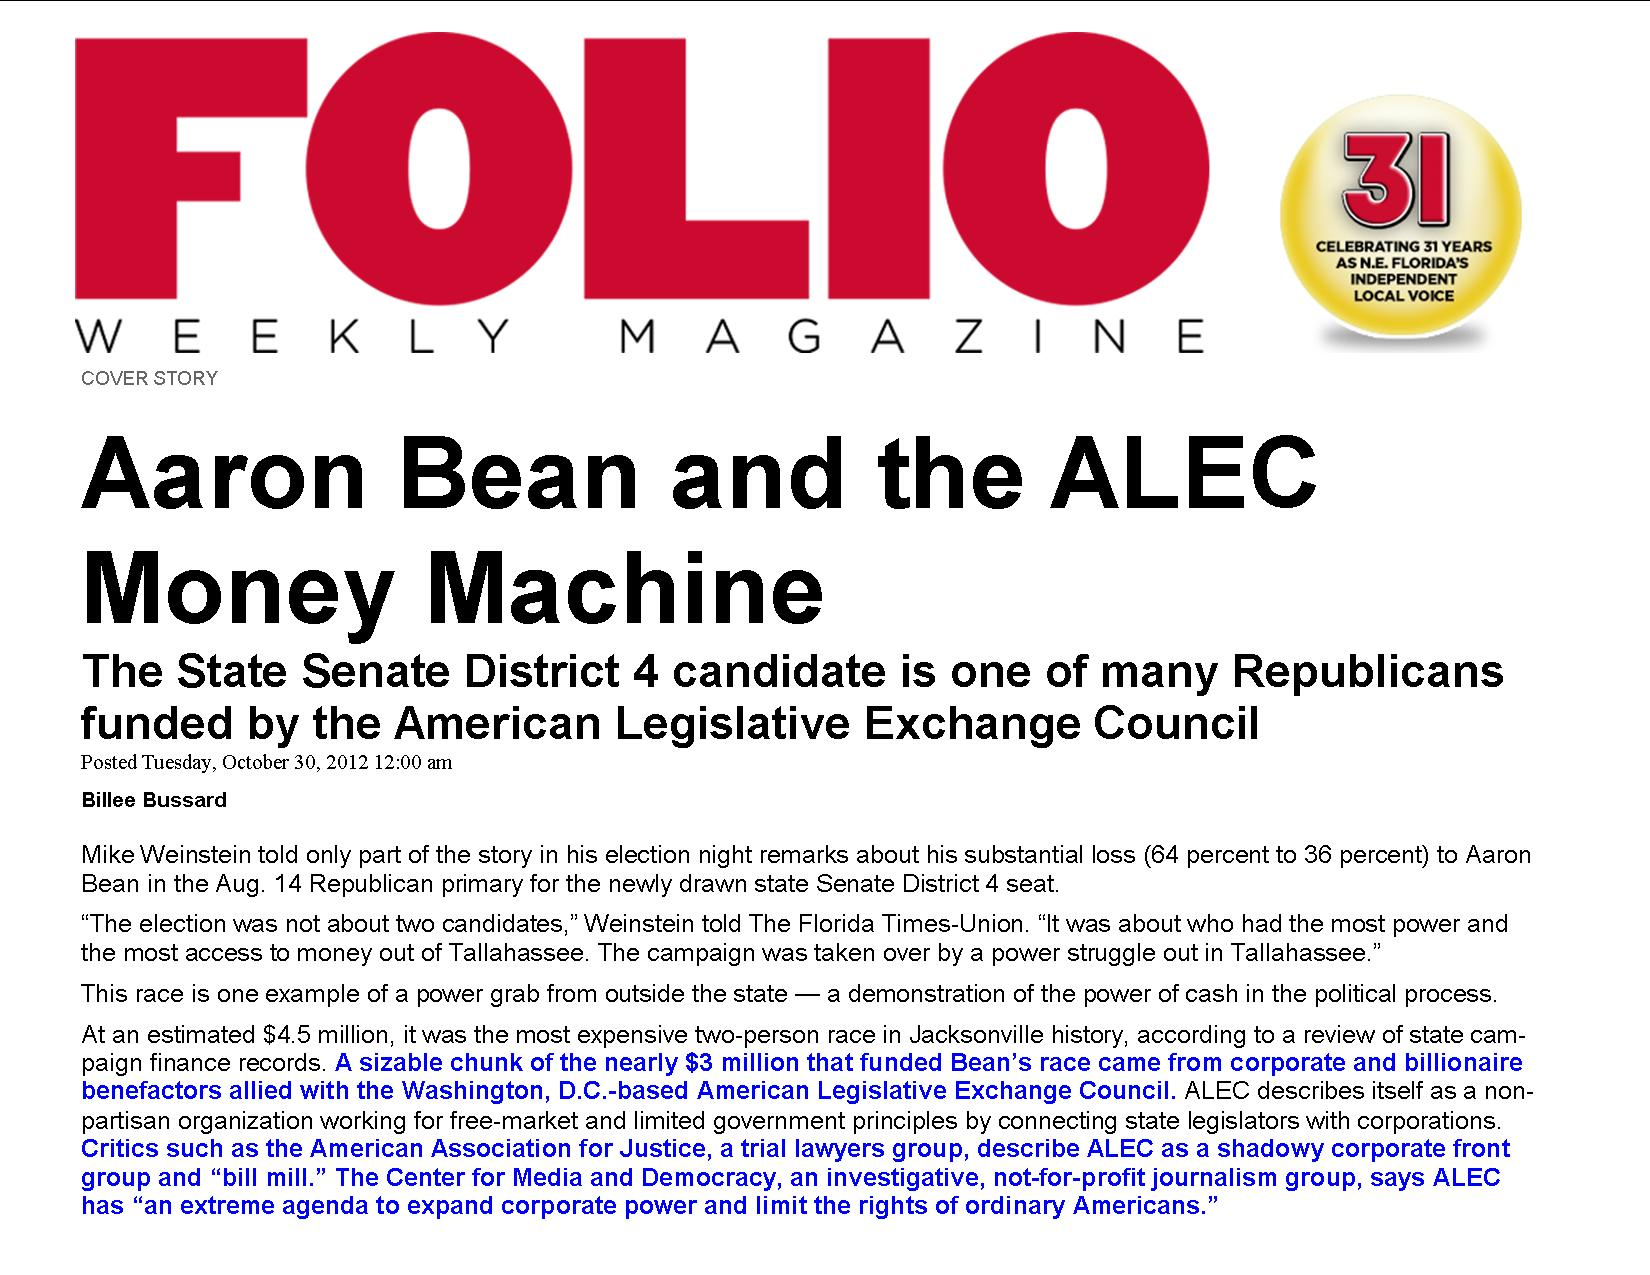 Aaron Bean and the ALEC Money Machine